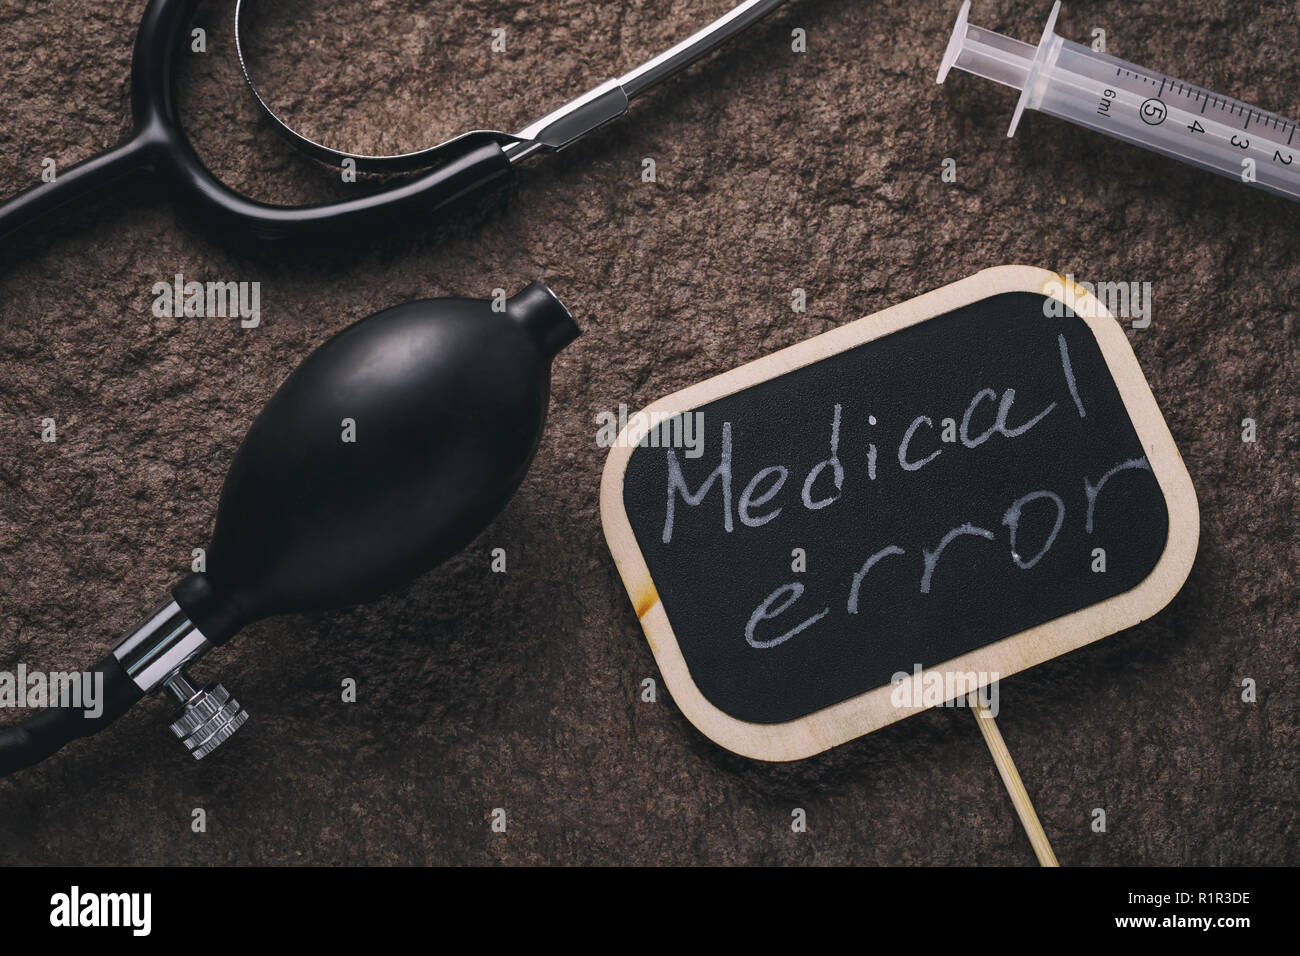 Medical instruments and medical error sign - Stock Image